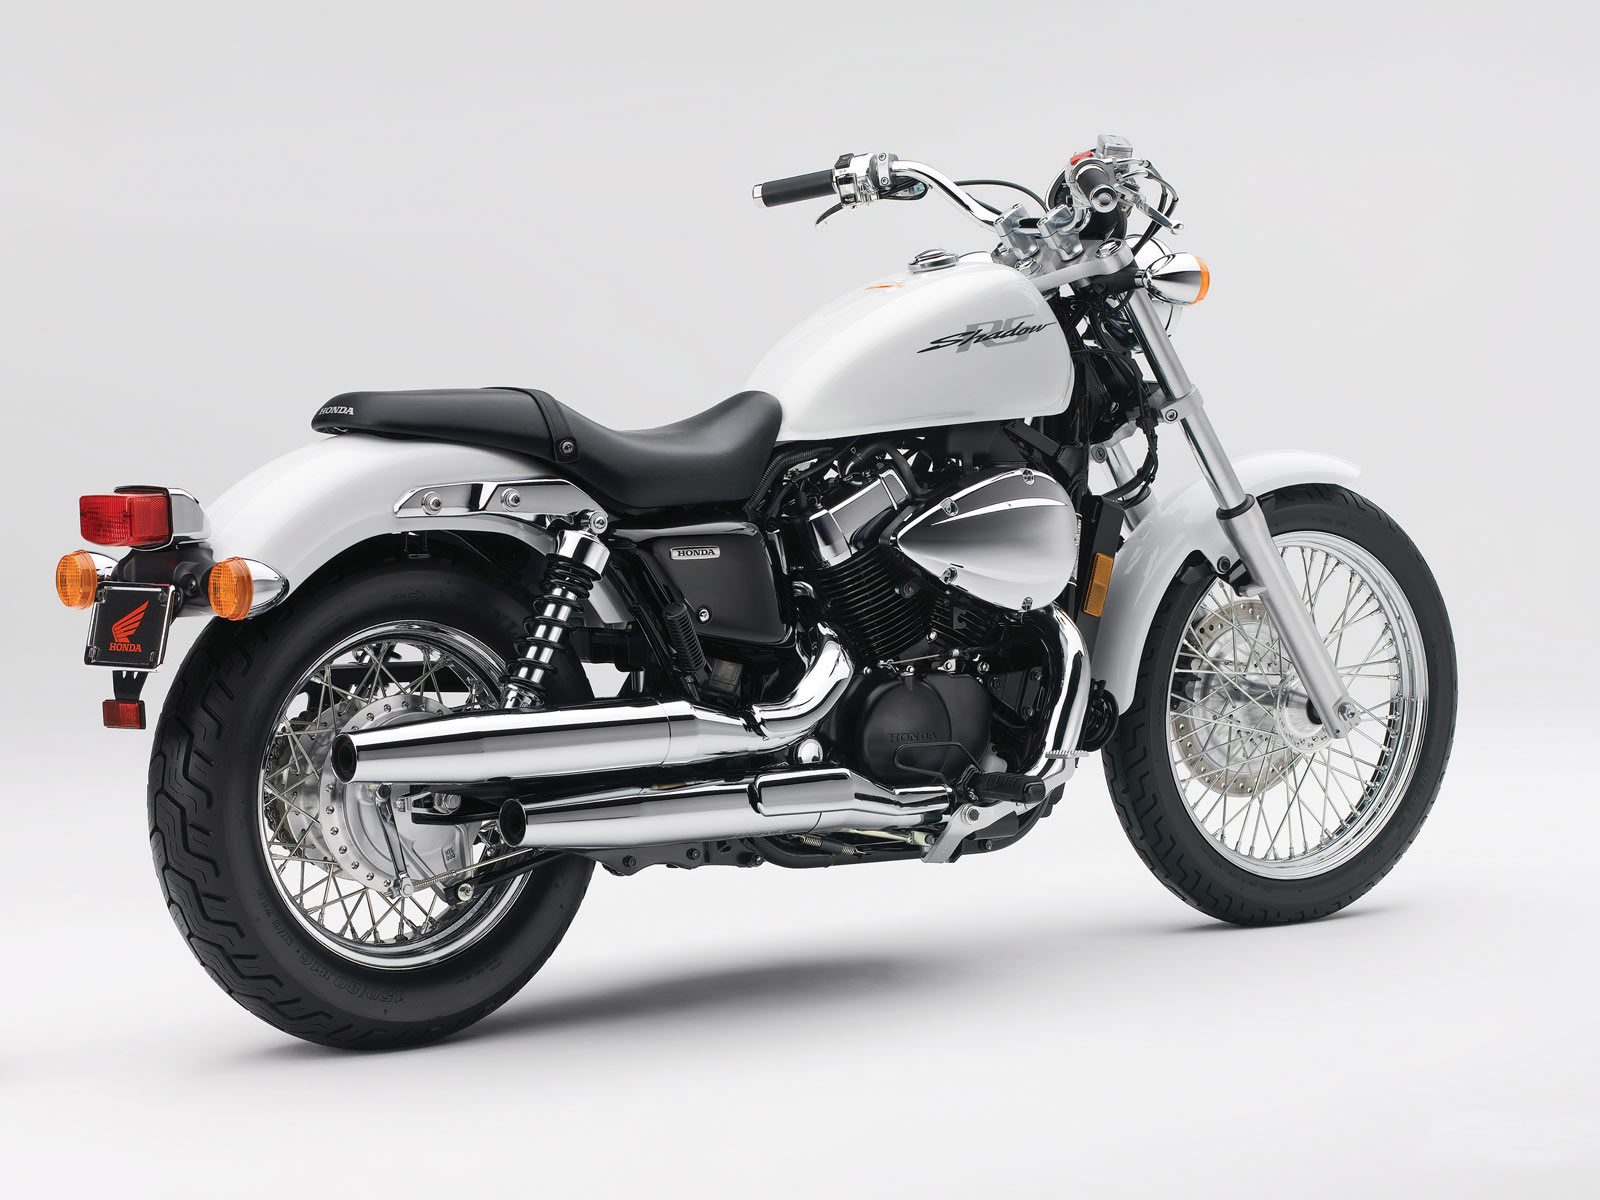 HONDA Shadow RS (2010)